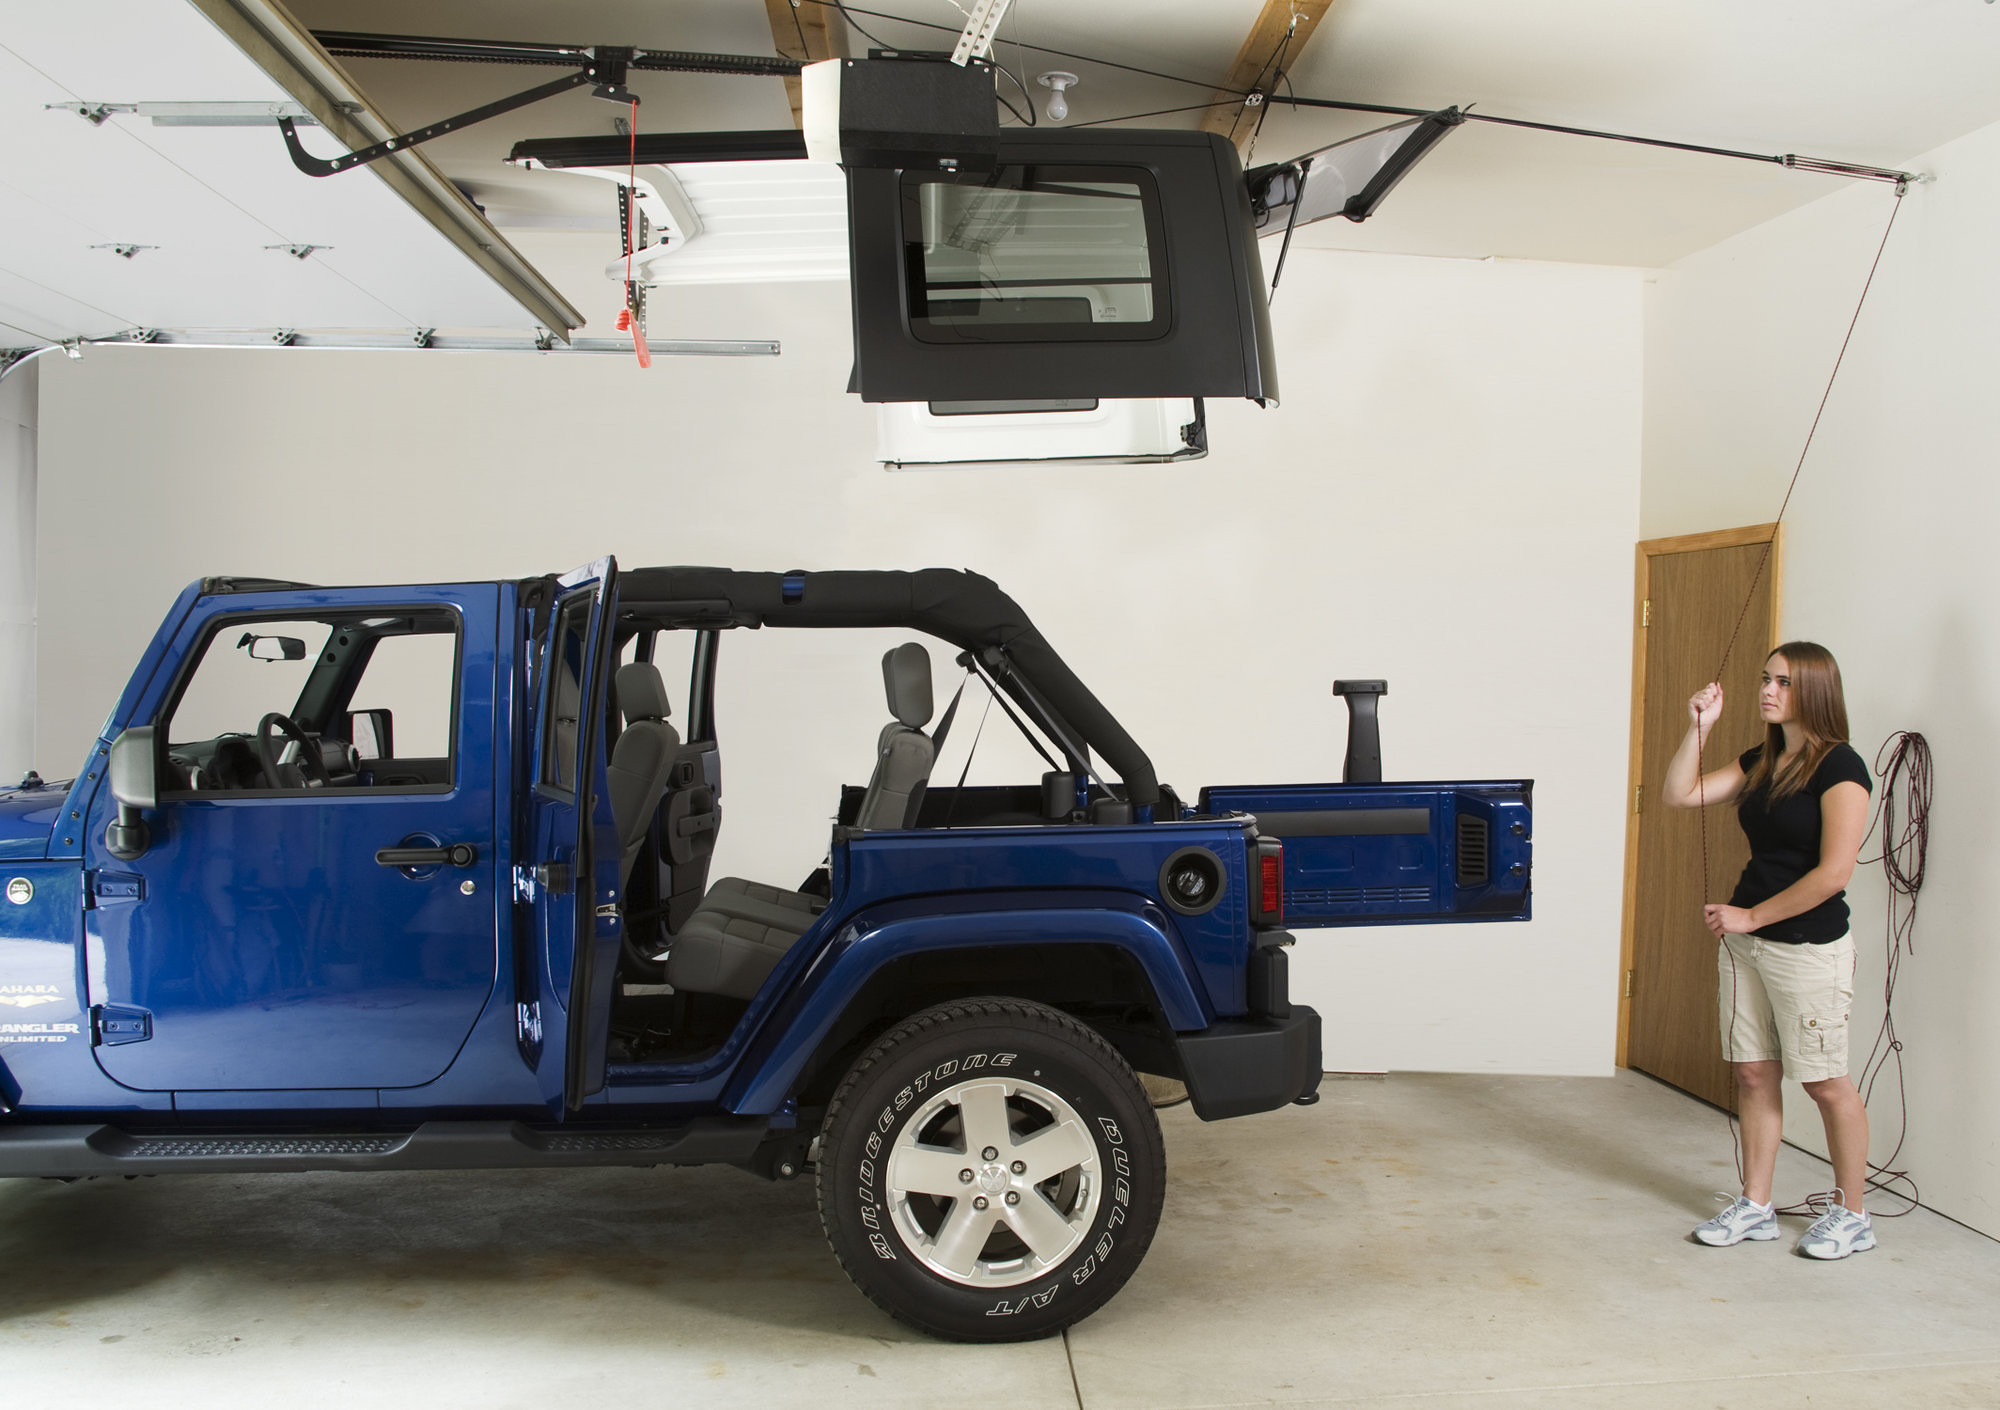 Harken Hoister Garage Hard Top Storage 4-Point Lift System | 45-145 lb Load | Up to 10' Ceilings | For 1987+ Various Jeep Models (See Details) 7803B